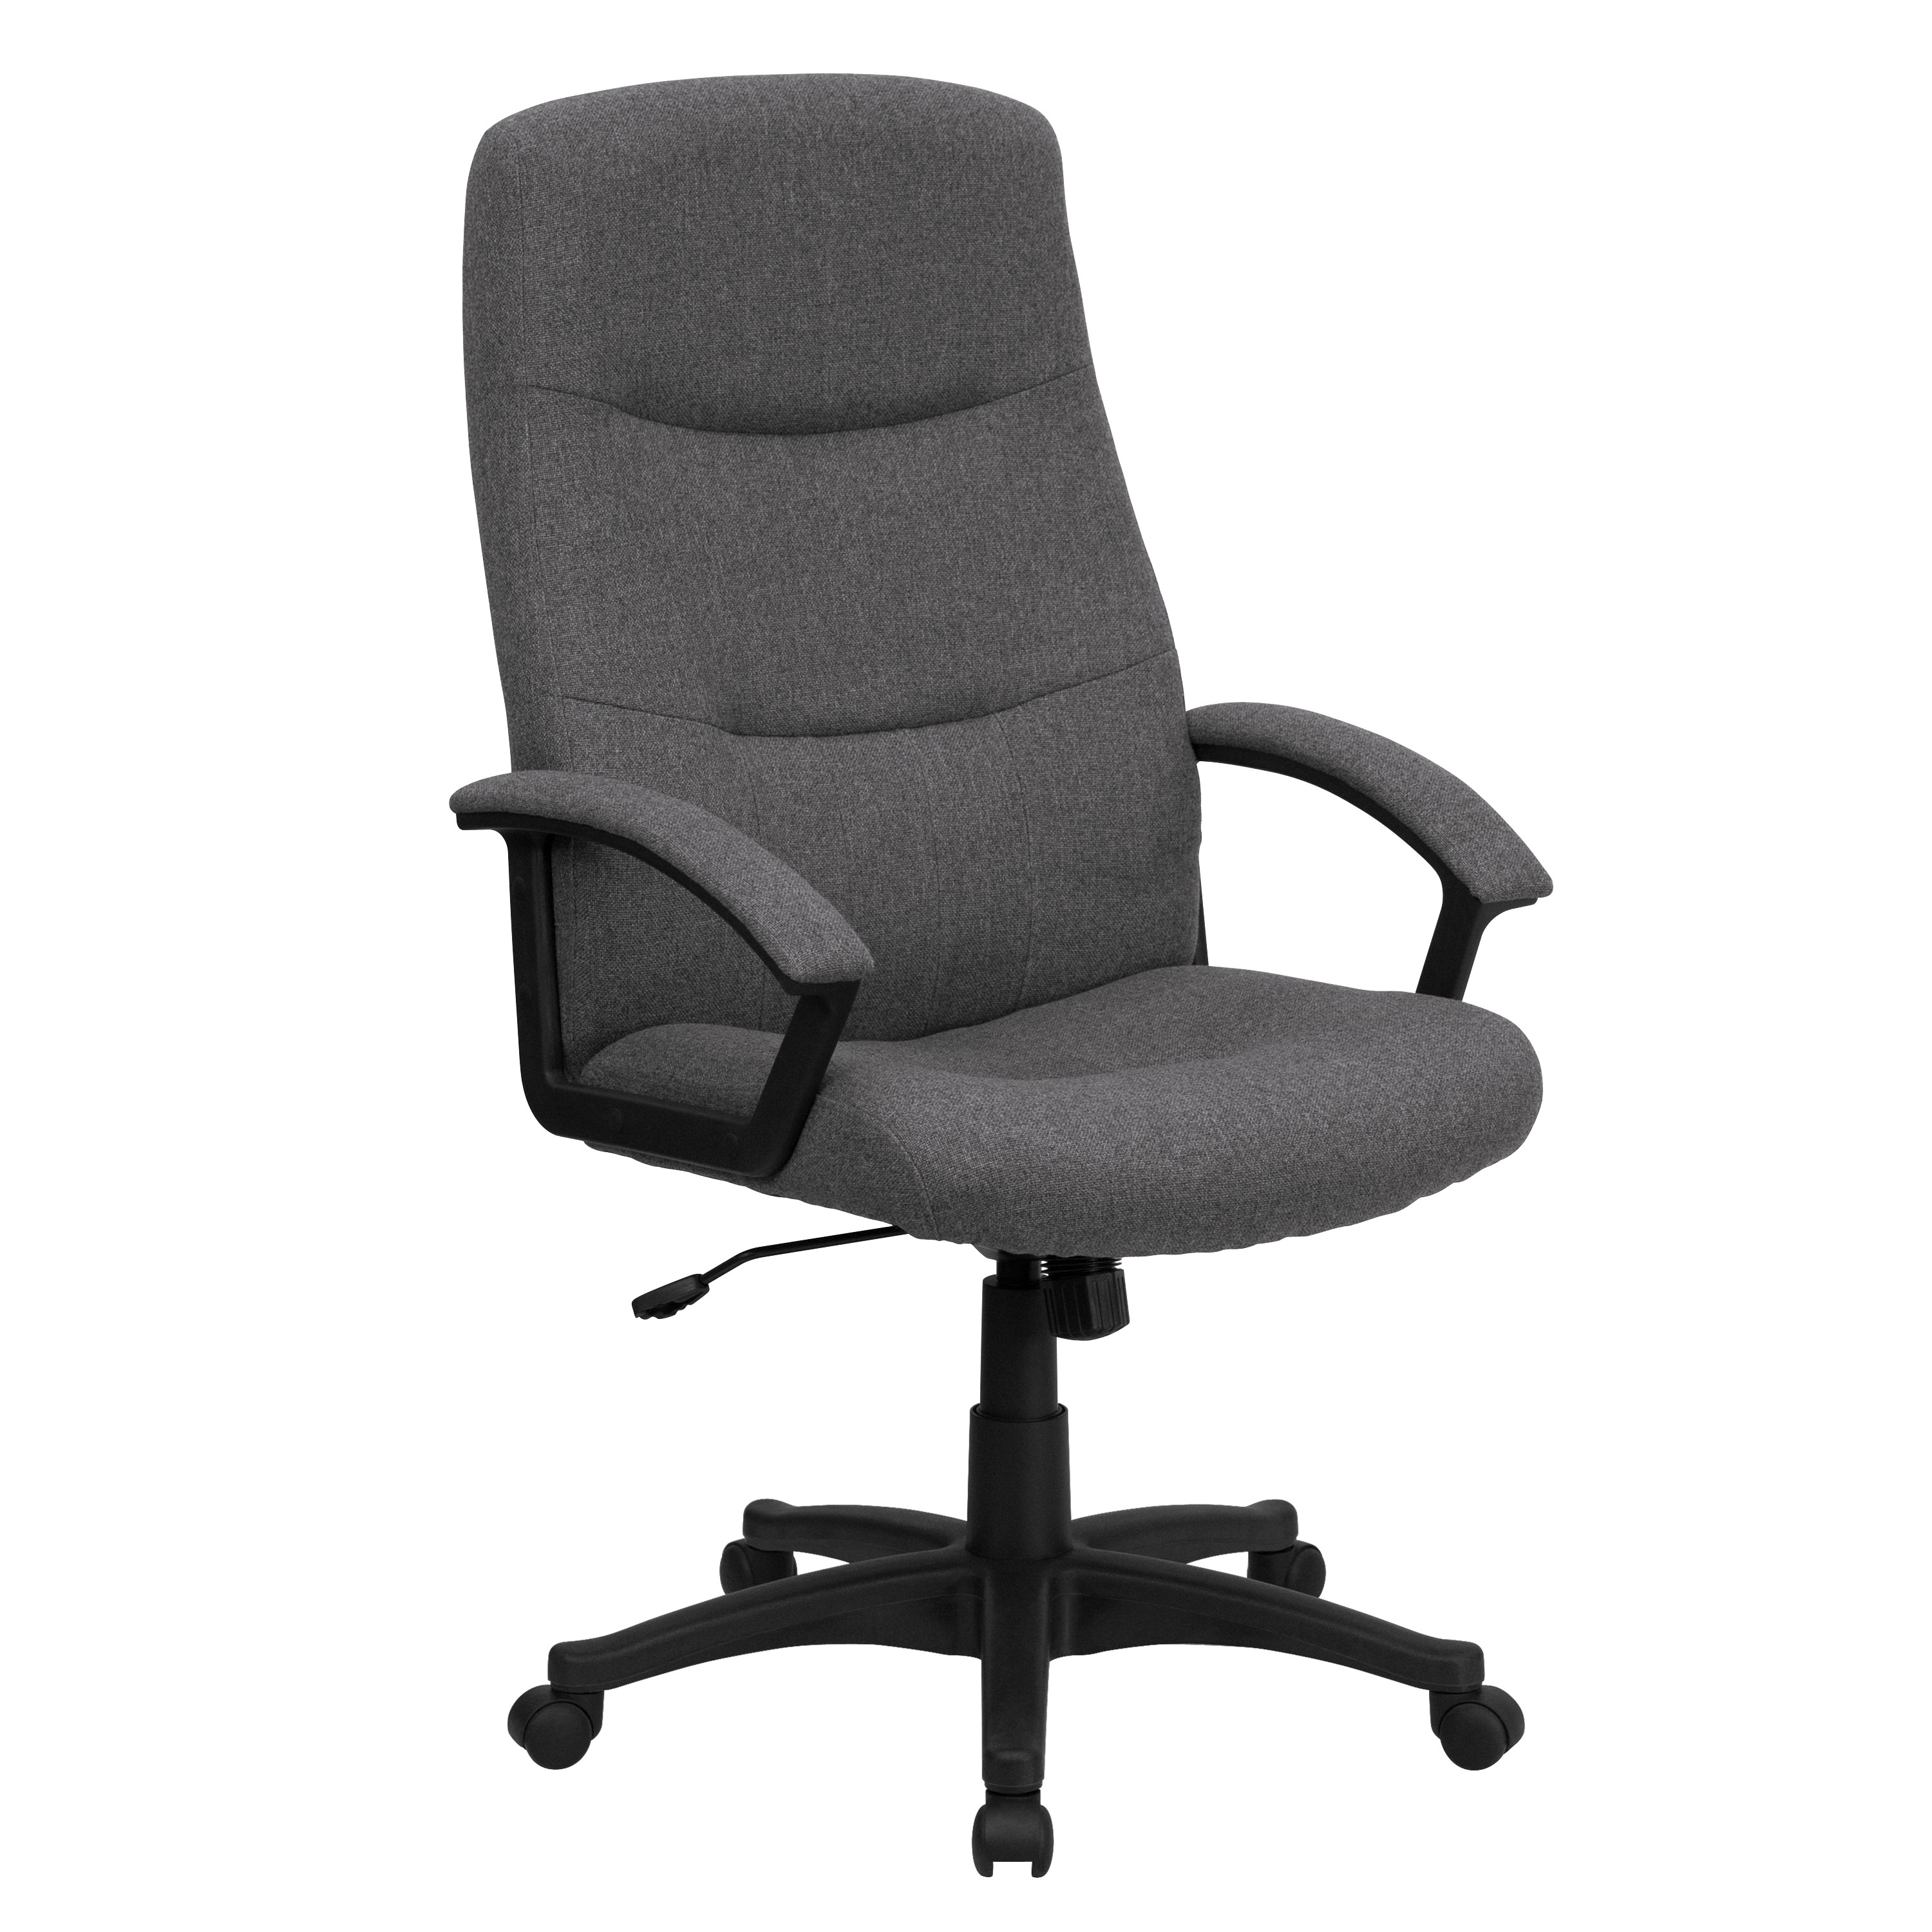 High back fabric office chair - High Back Fabric Office Chair